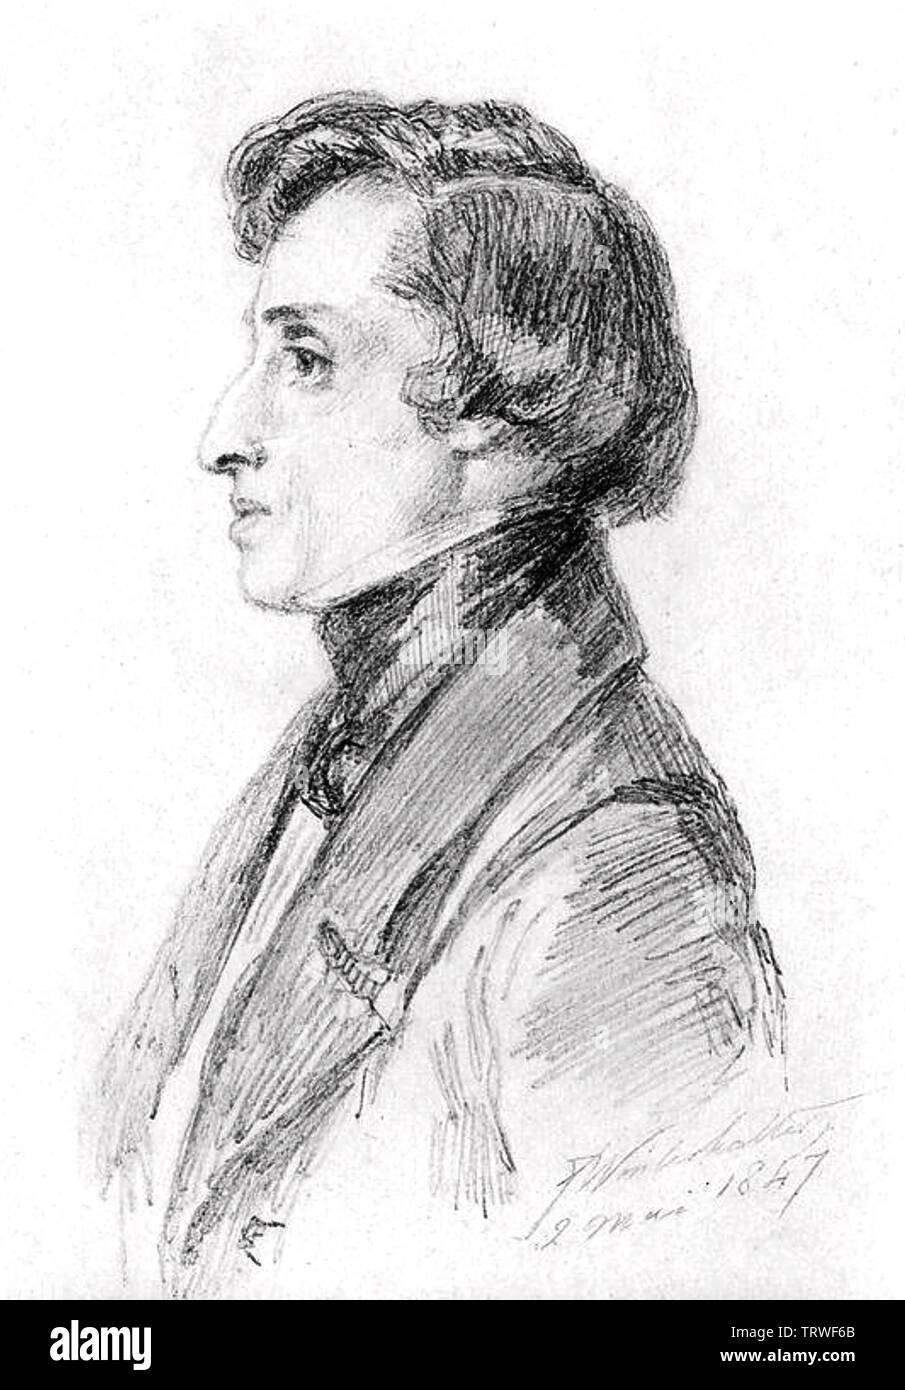 FRÉDÉRIC CHOPIN (1810-1849) Polish composer sketched in 1847 - Stock Image